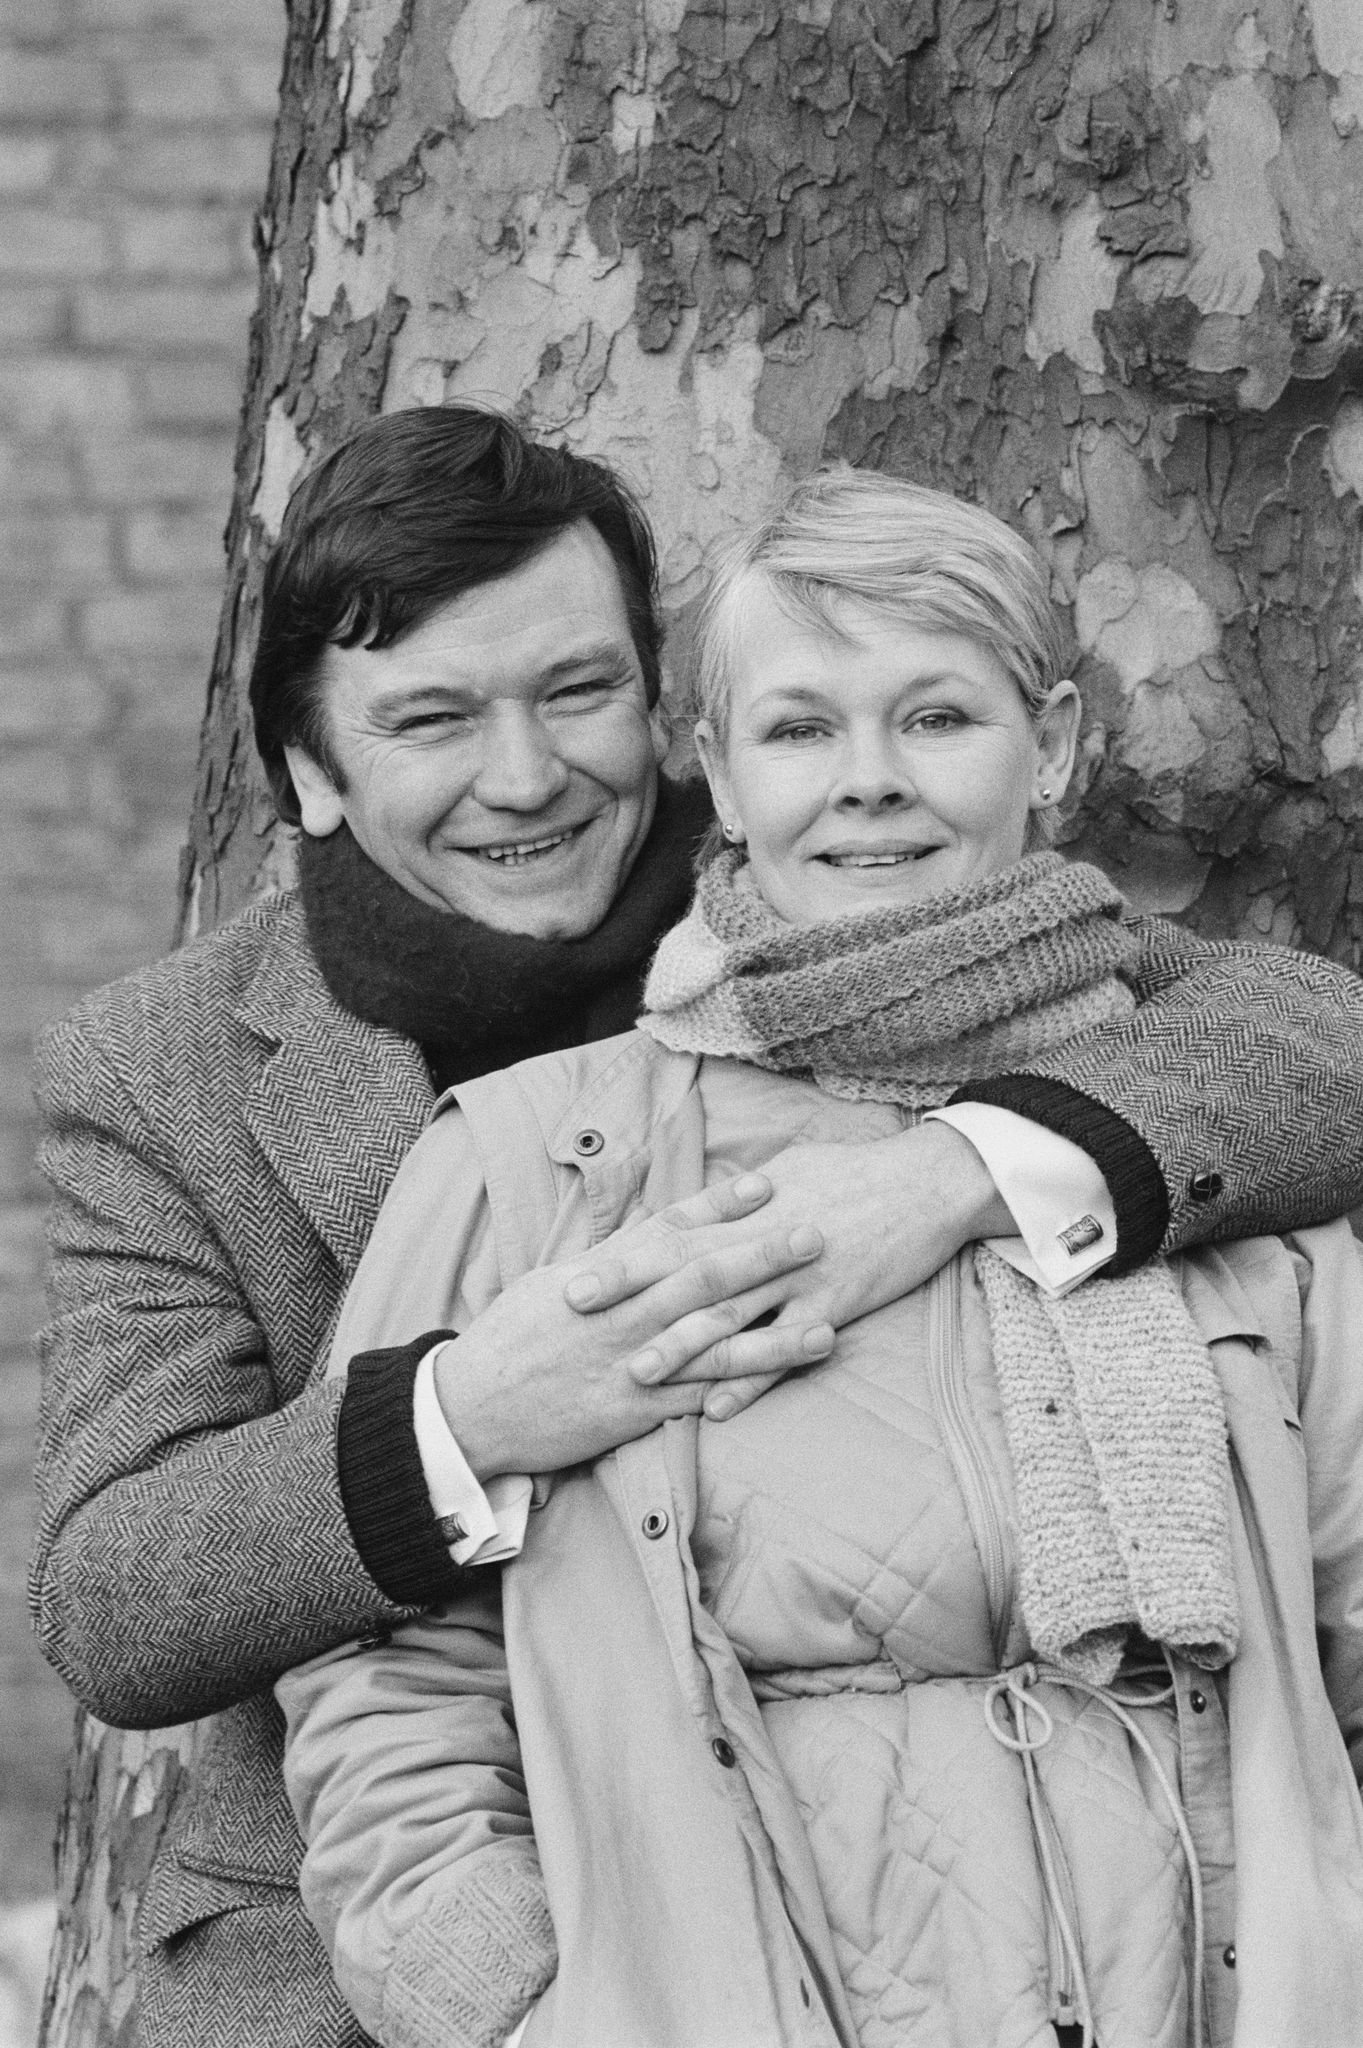 """Judi Dench and Michael Williams in the television sitcom """"A Fine Romance"""" in 1983 in London, England 